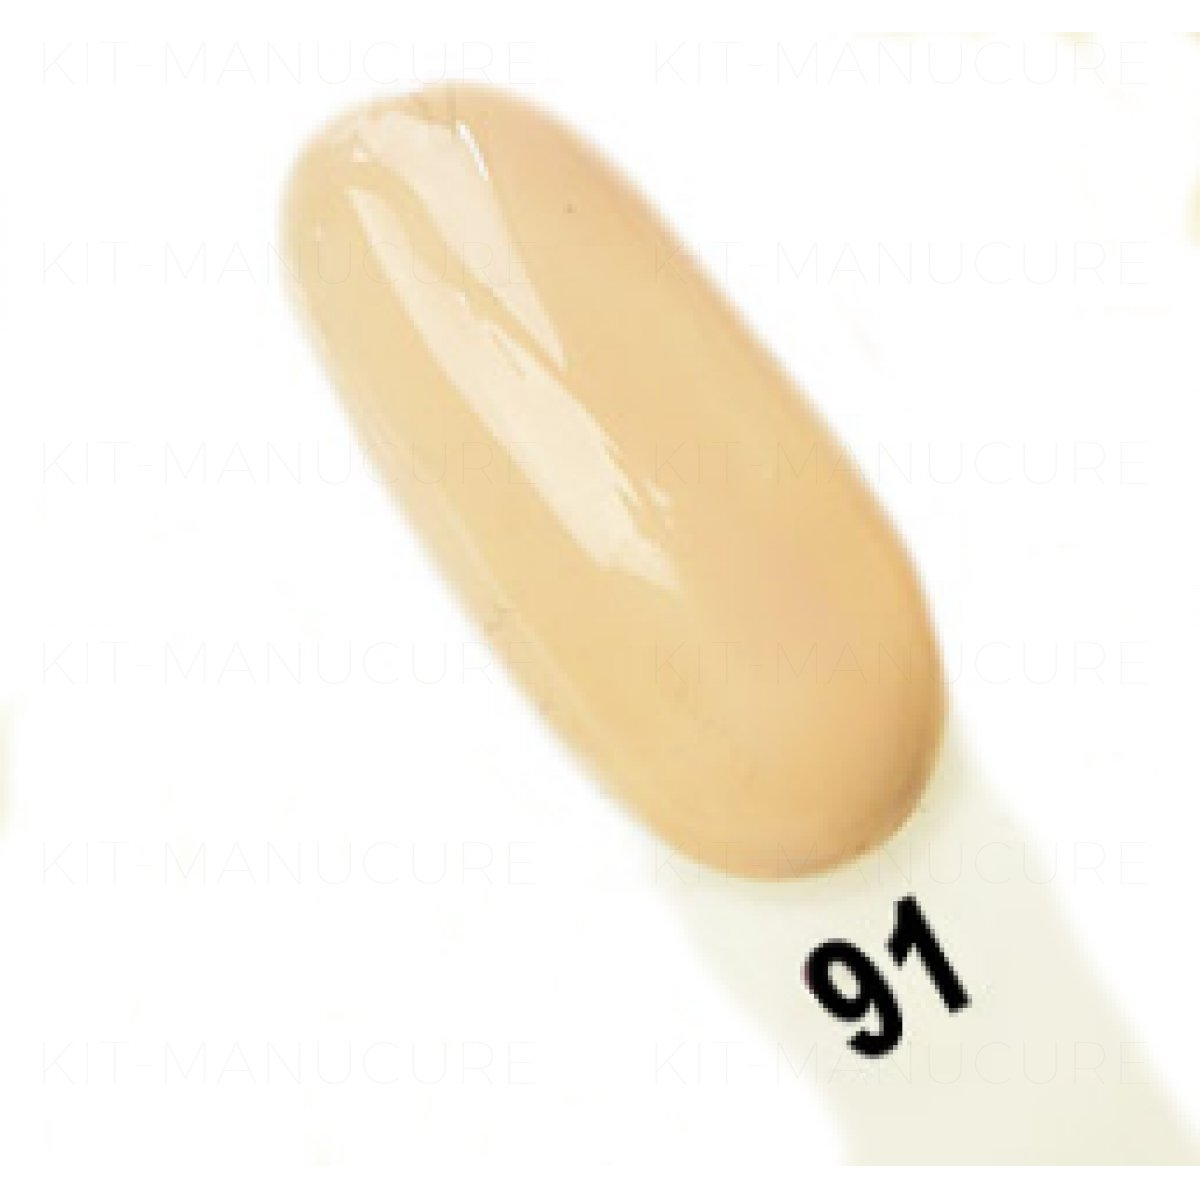 https://www.kit-manucure.com/1220-thickbox_default/gel-uv-beige-5-ml.jpg